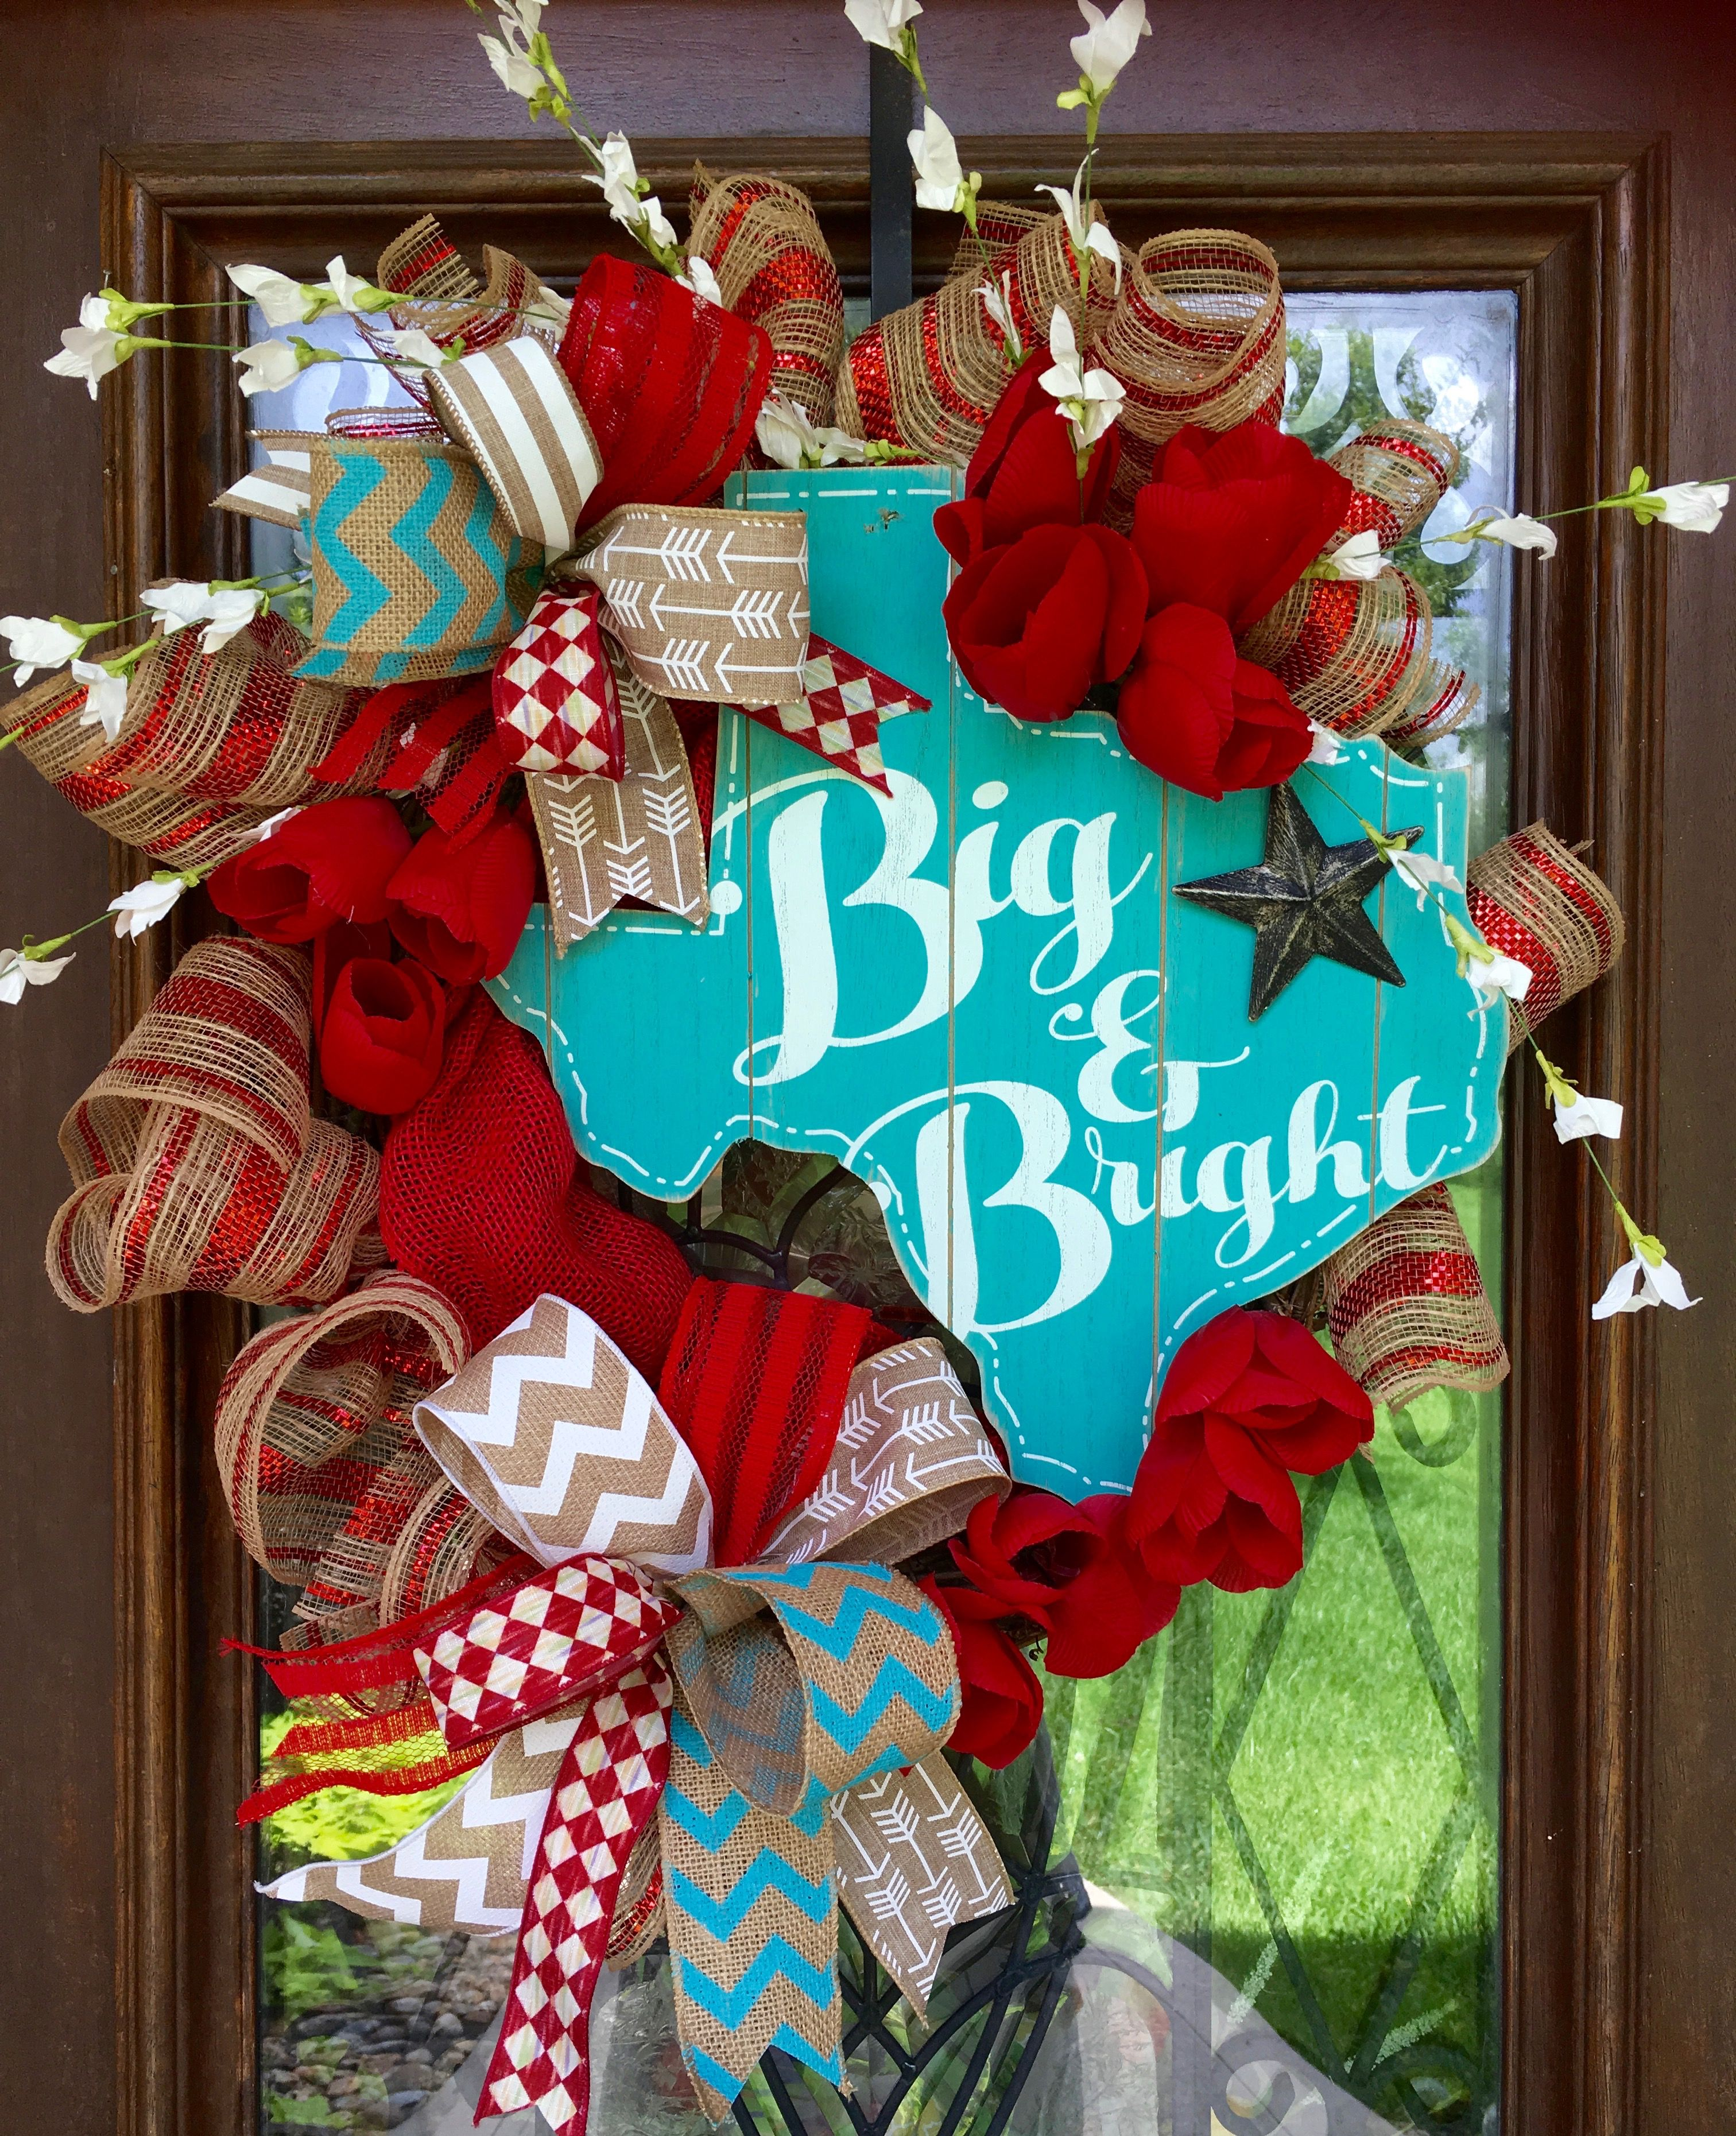 Red Turquoise Not Just For Holiday Decor: Red And Turquoise Big And Bright Texas Wreath